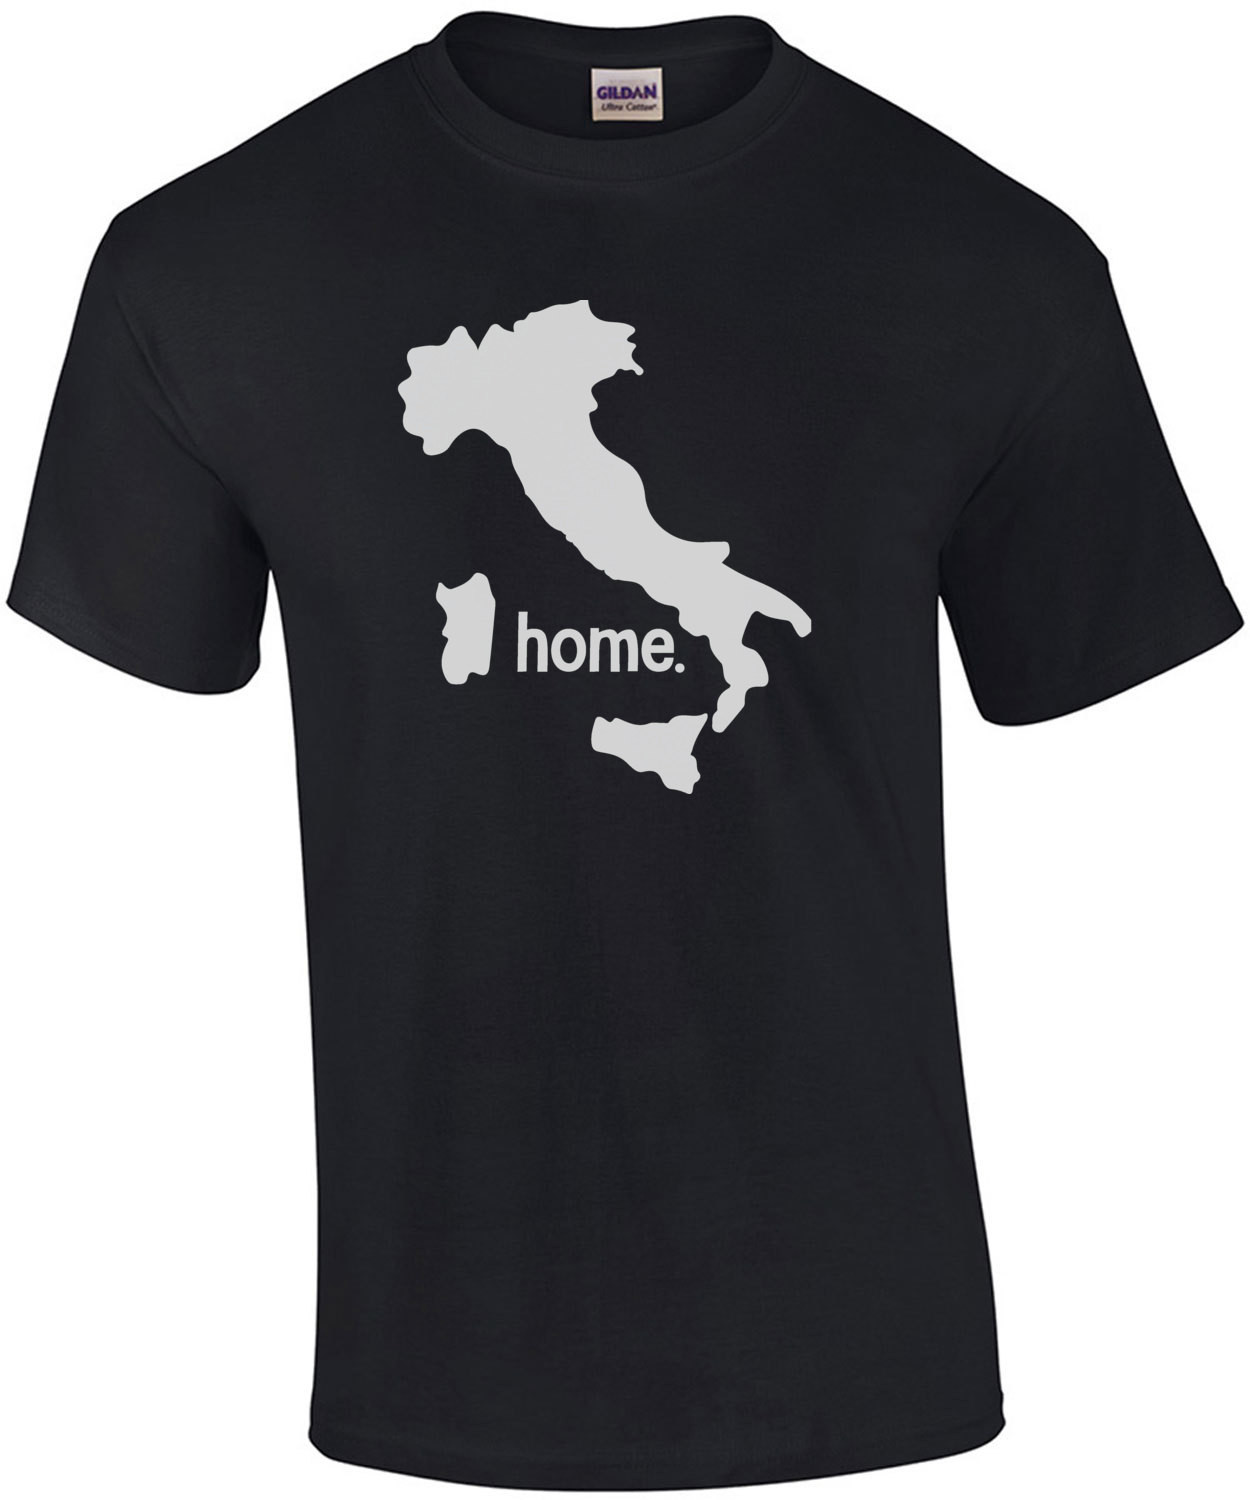 Italy Home T-Shirt